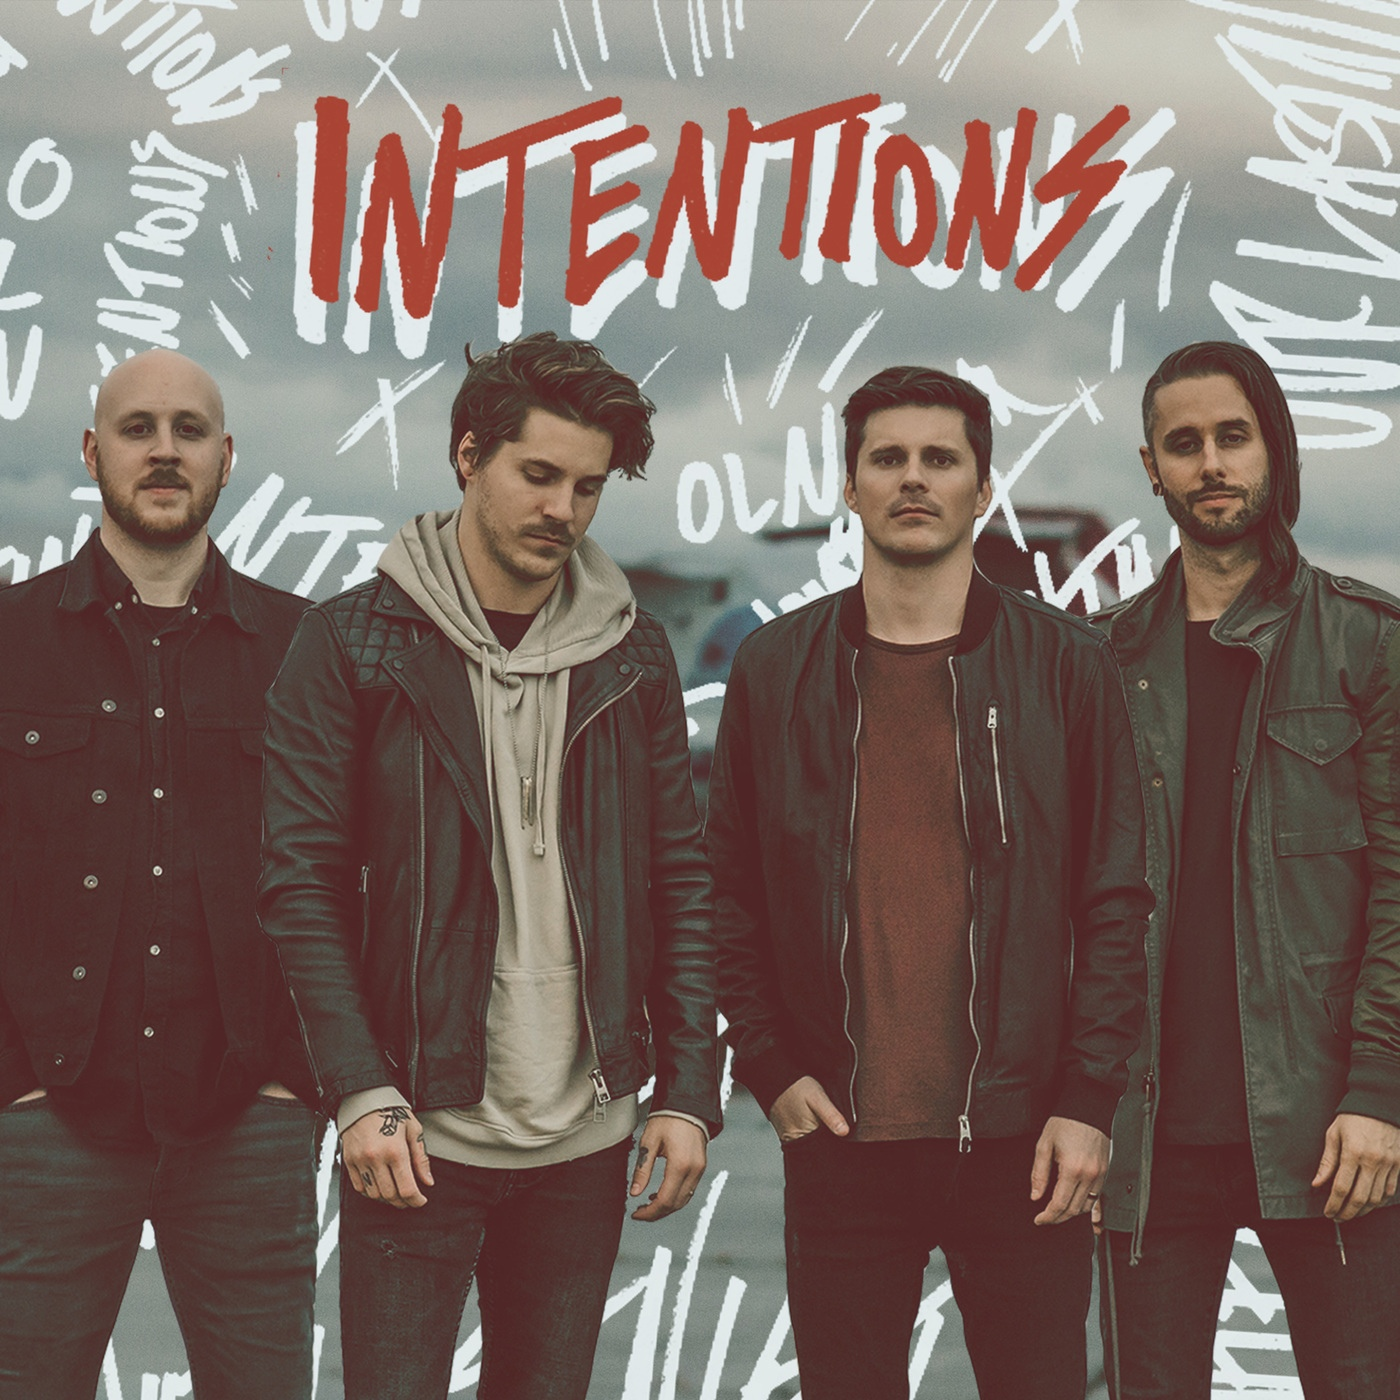 Our Last Night - Intentions [single] (2020)